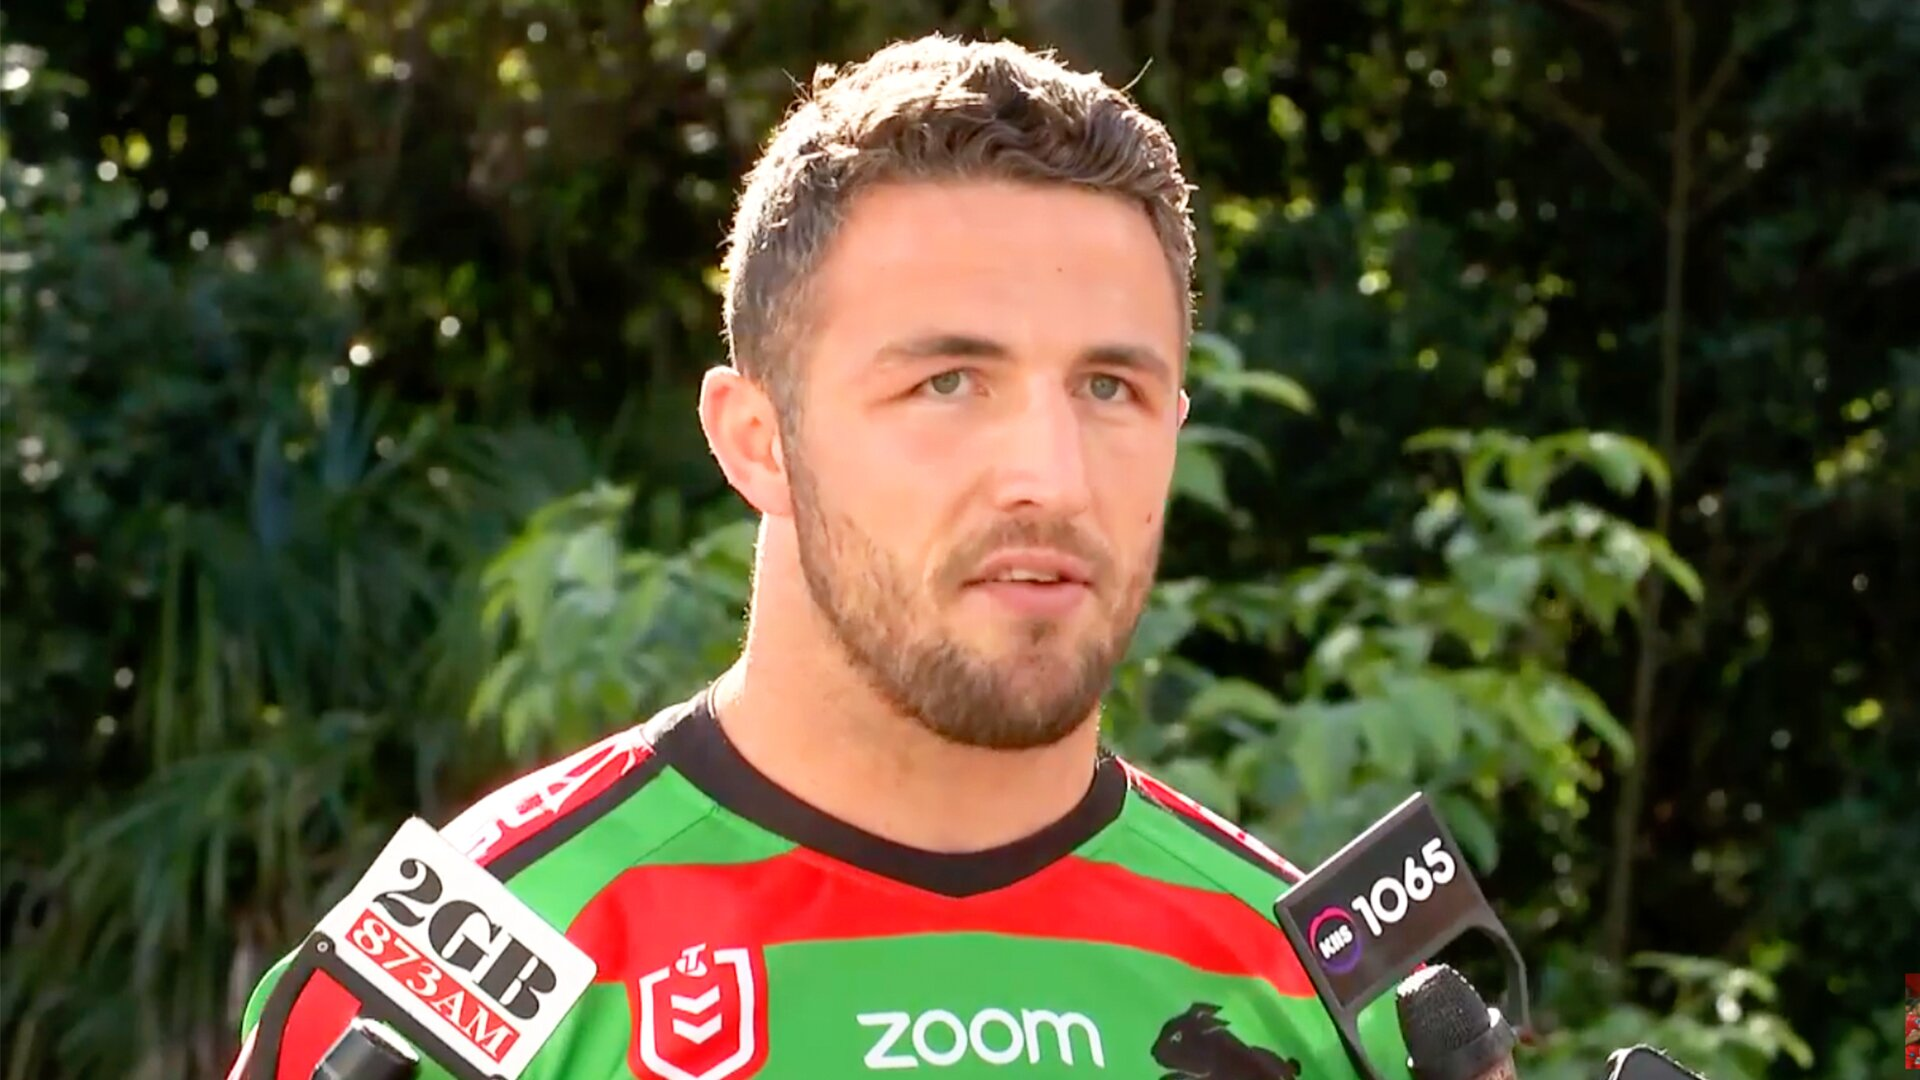 Sam Burgess loses it in feisty altercation with Australian journalist